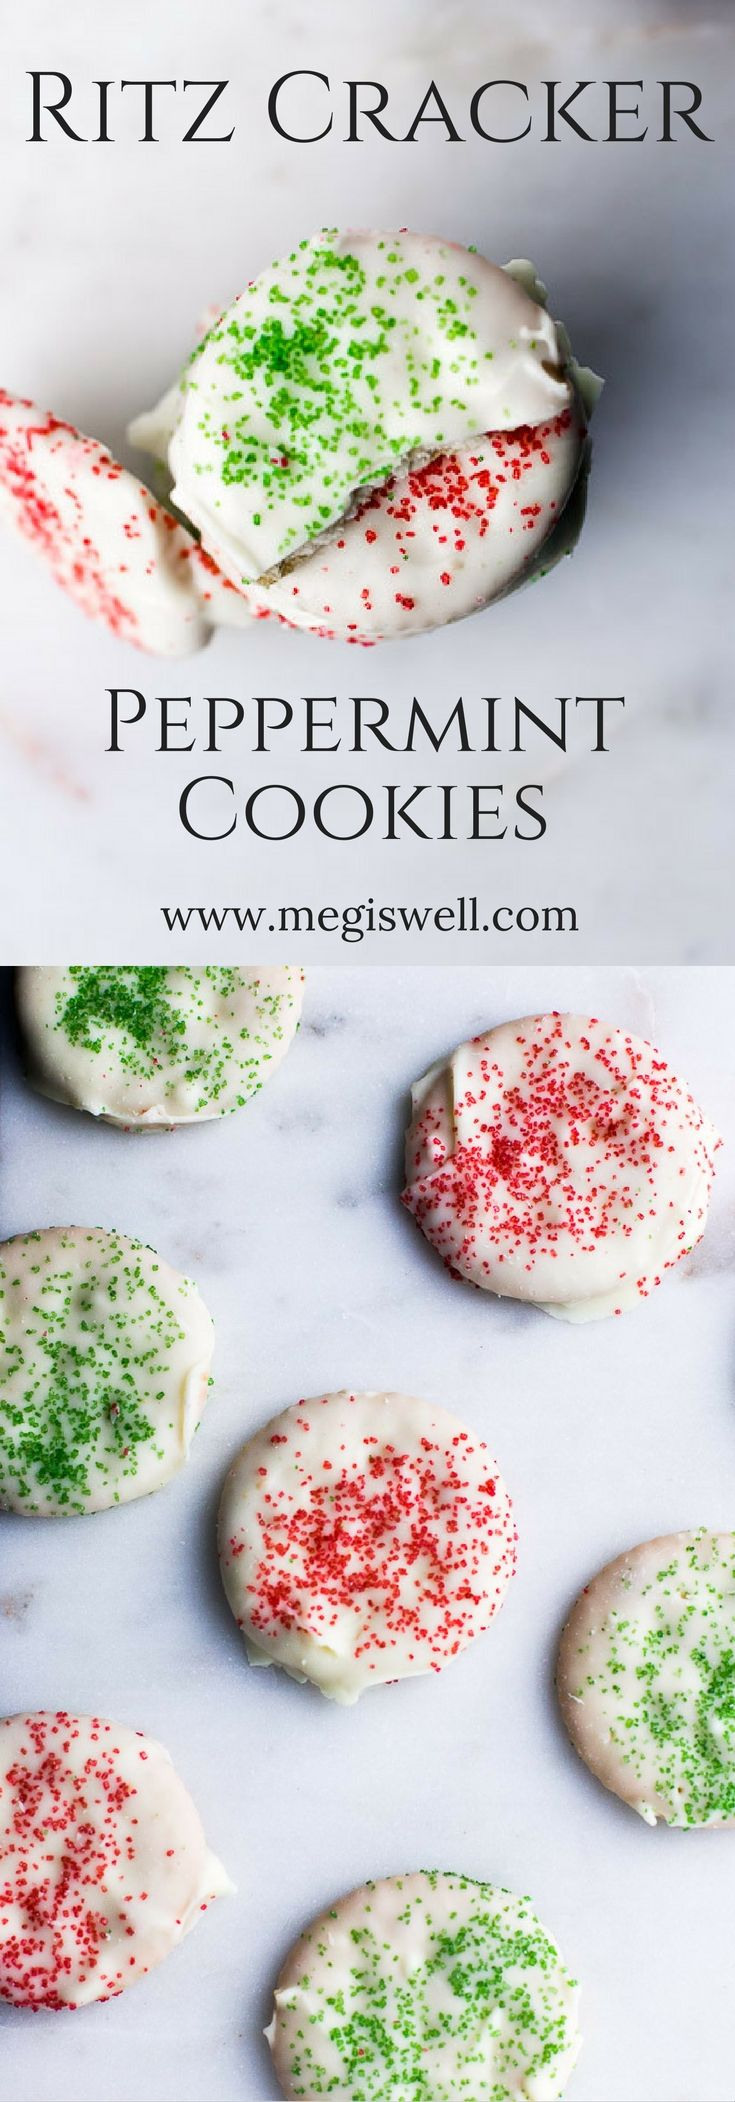 ... Cracker all combine in one bite in these Ritz Cracker Peppermint